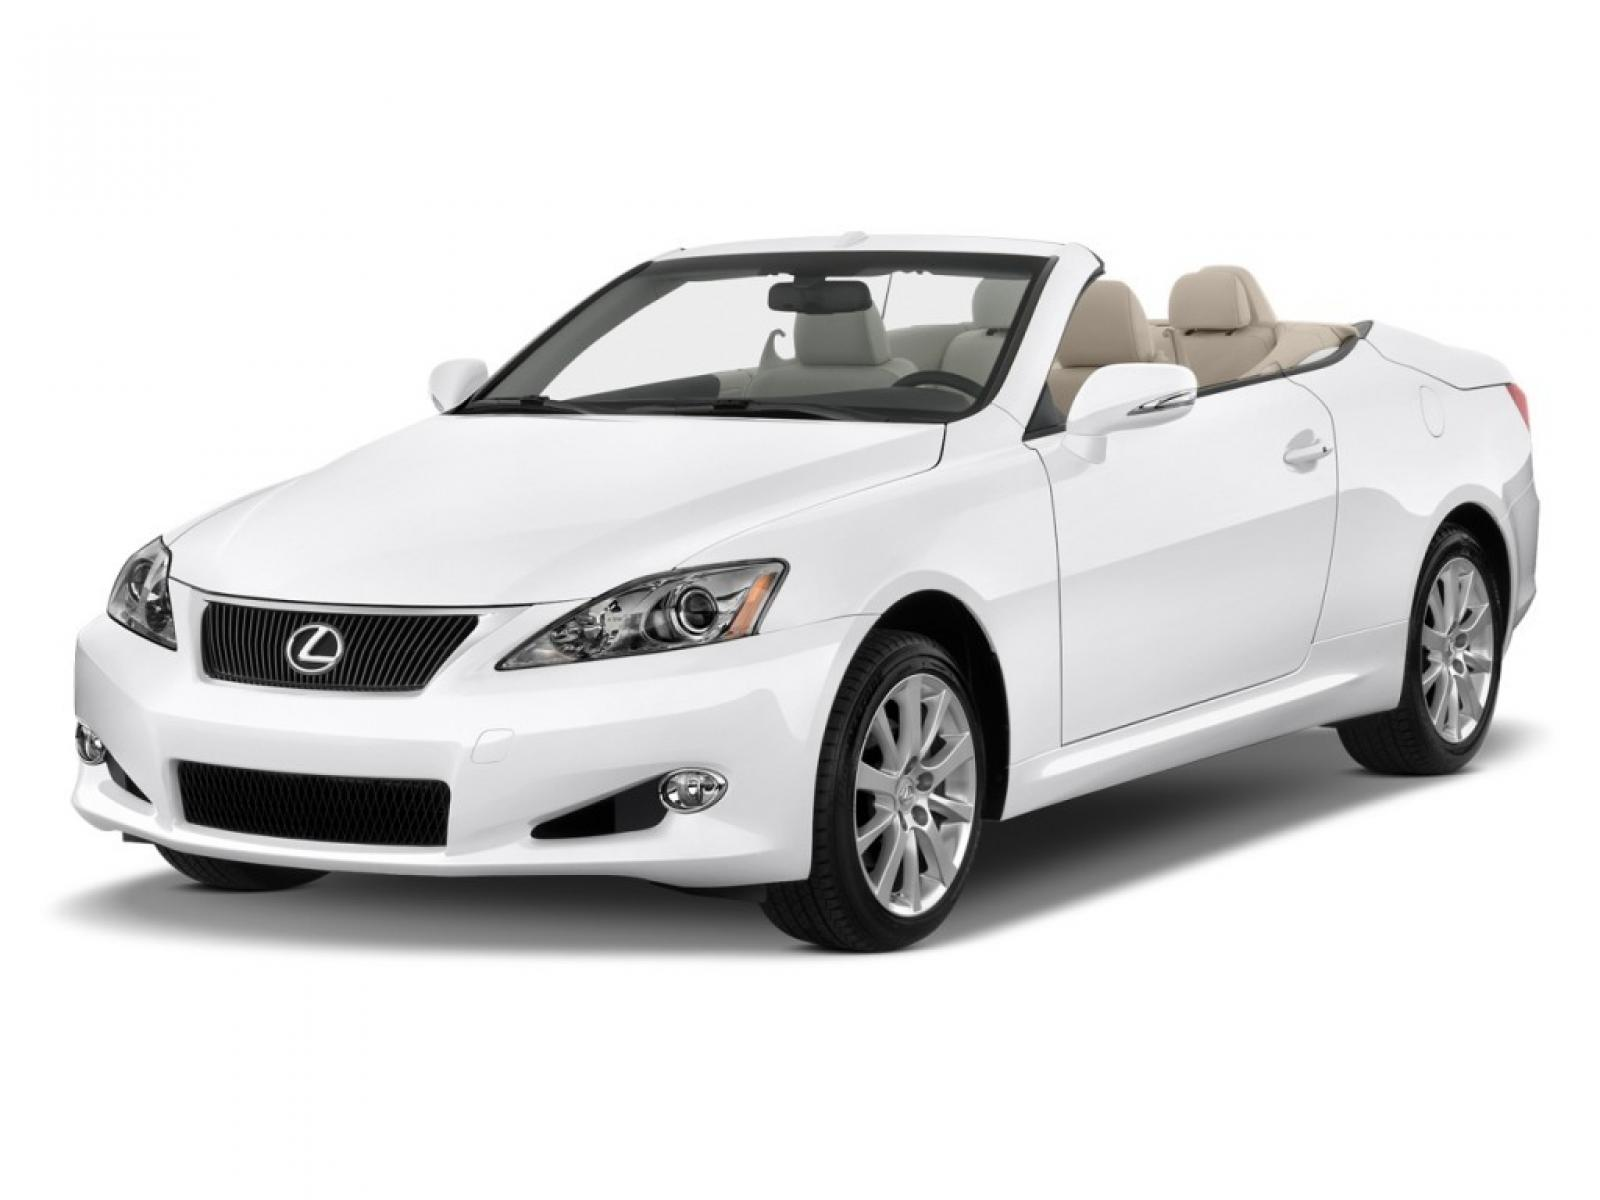 f gs is pin sport pinterest lexus price auto and review vehicle japan photo cars release